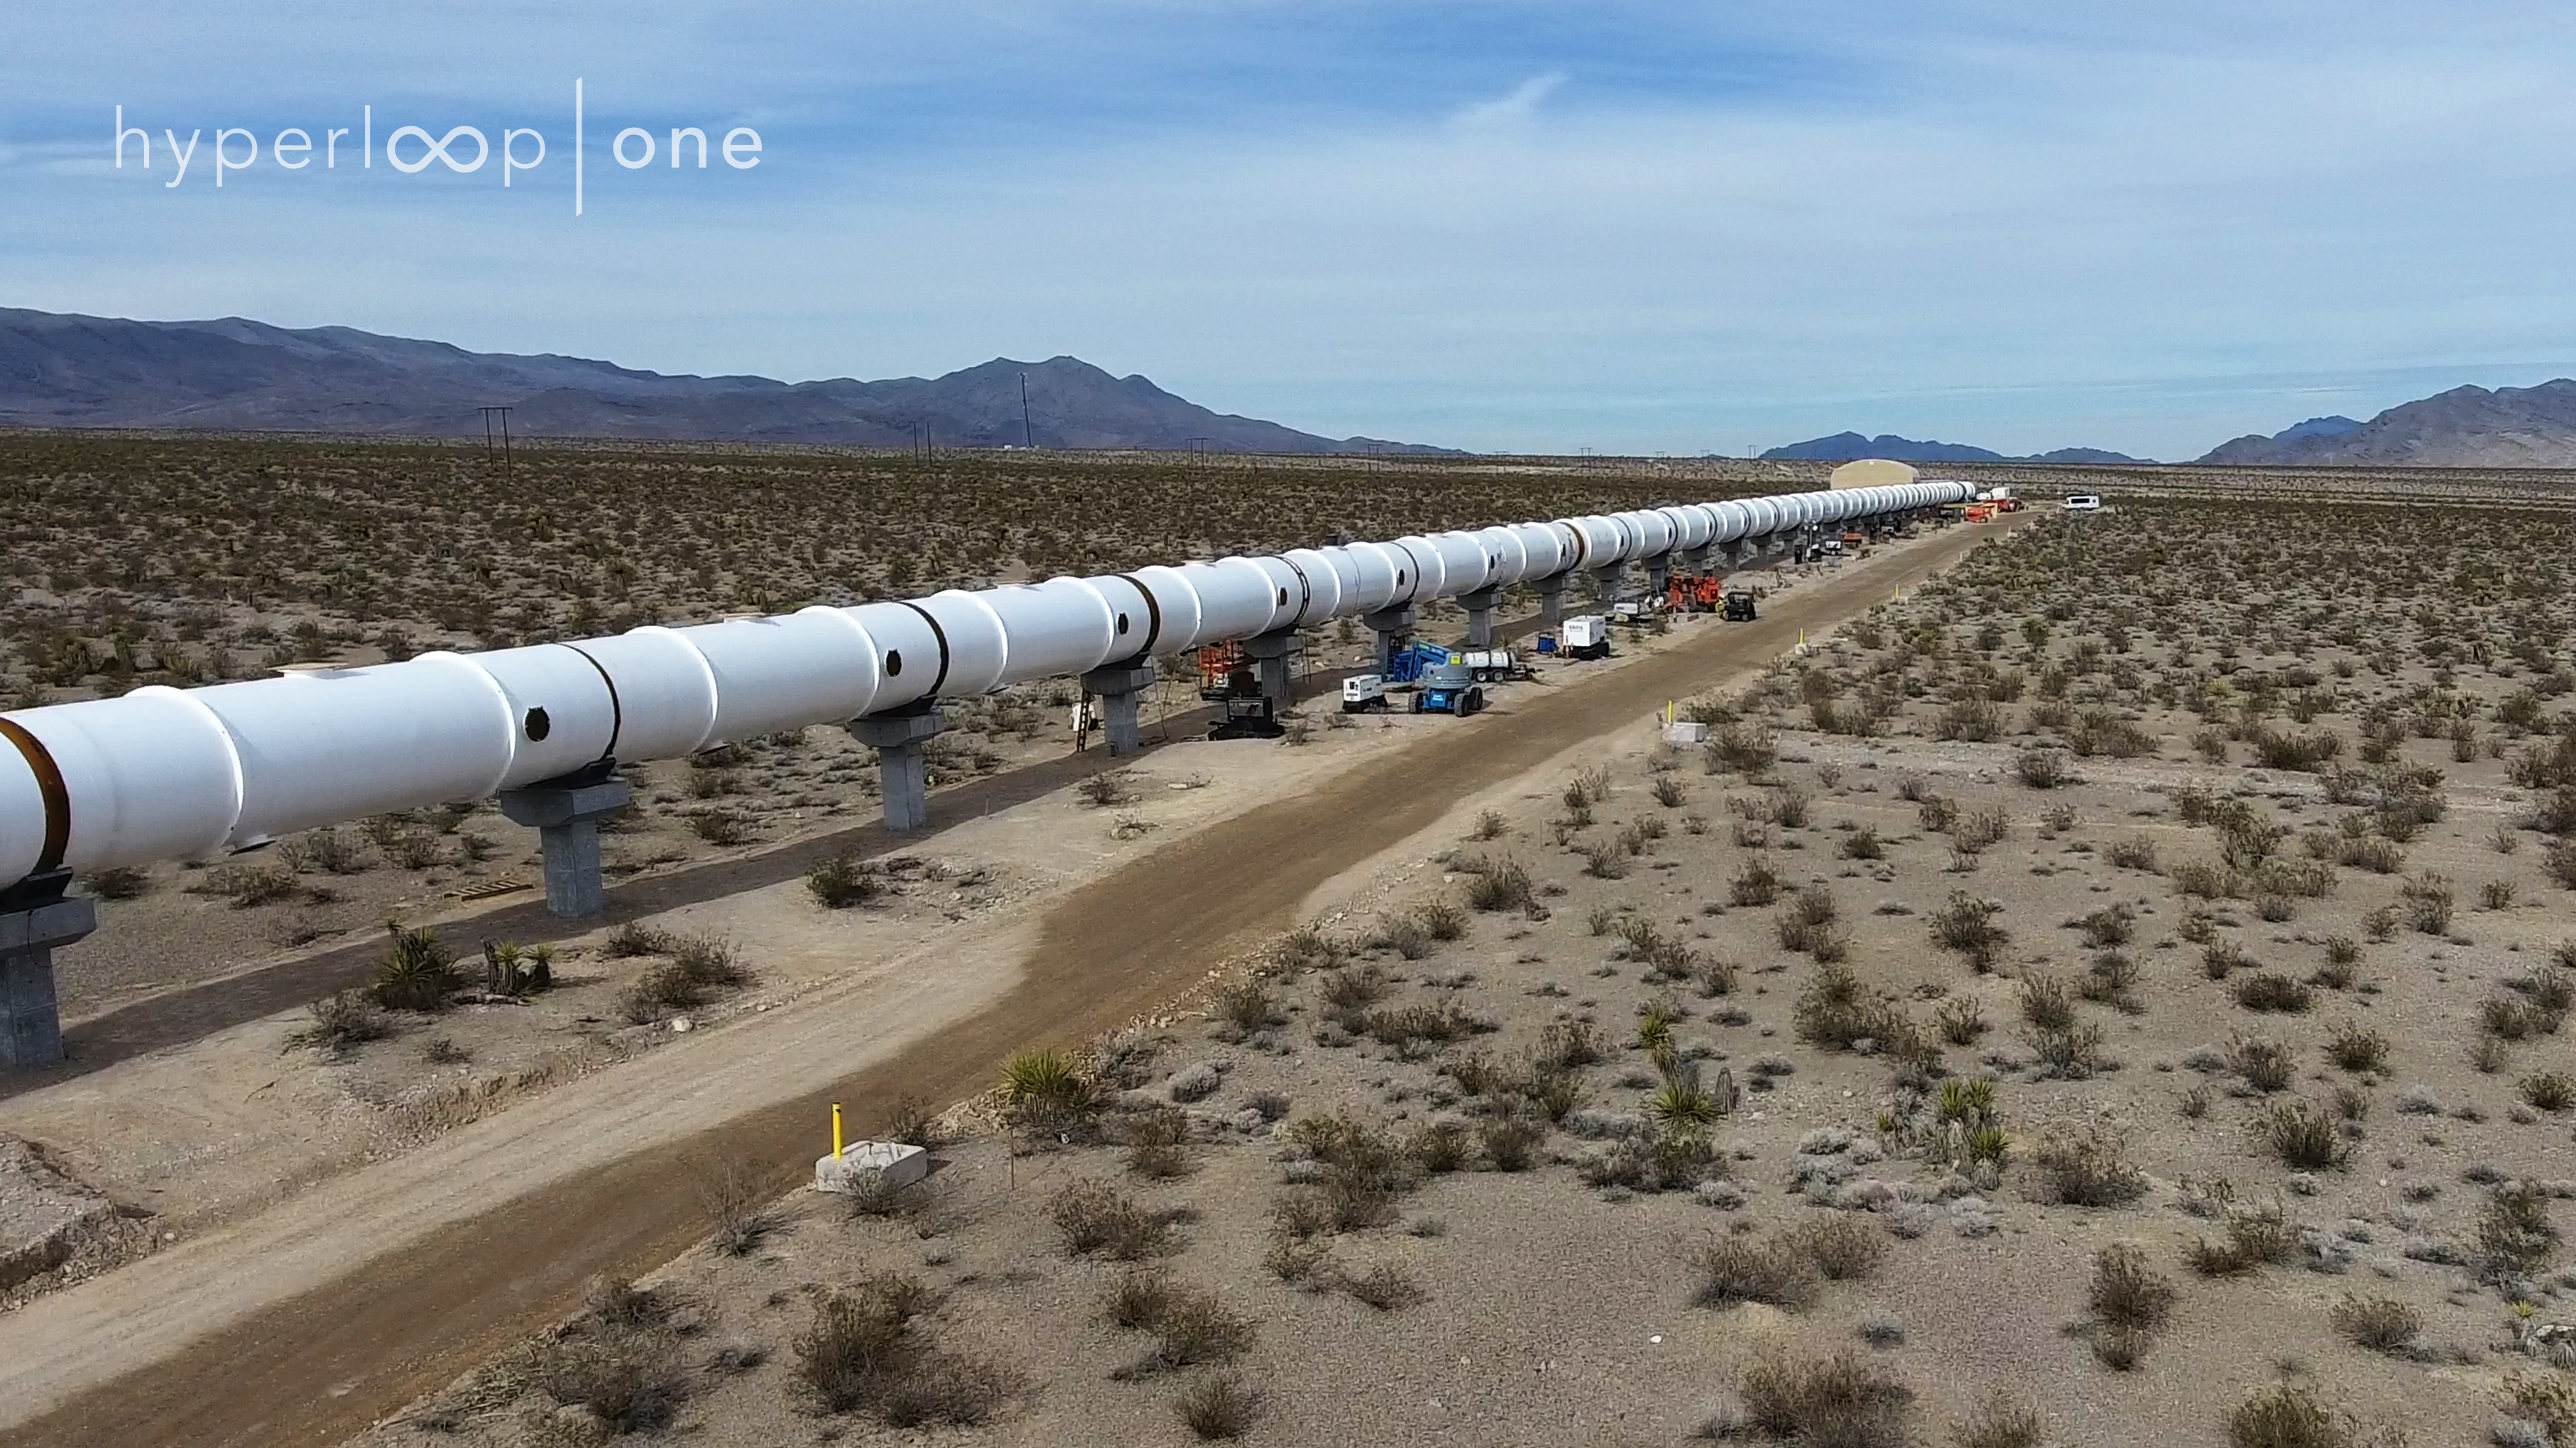 Hyperloop One shows off its first superfast test track in